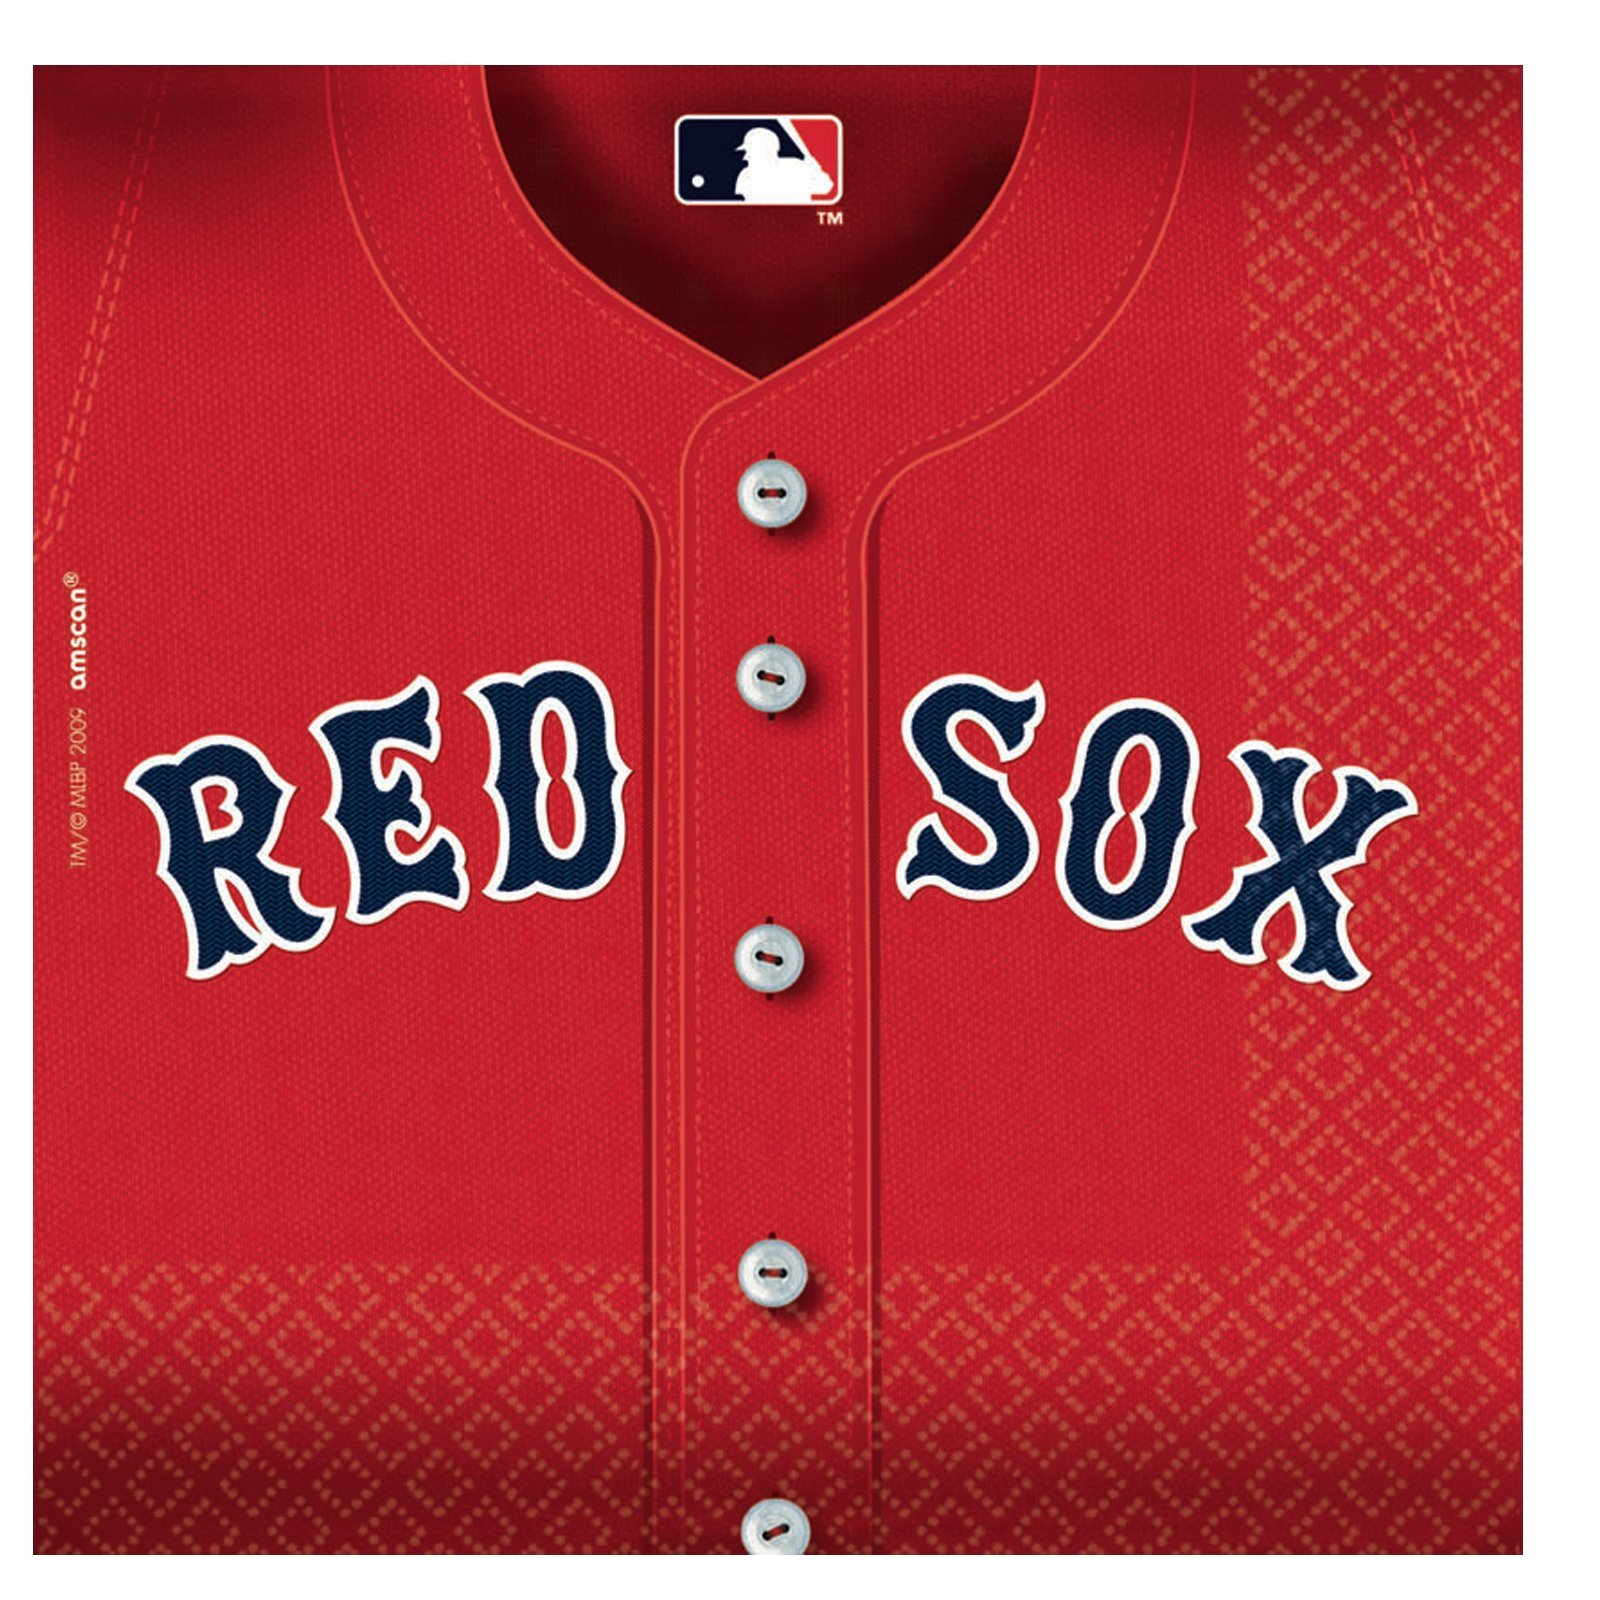 Boston Red Sox Party Napkins - 36 Ct